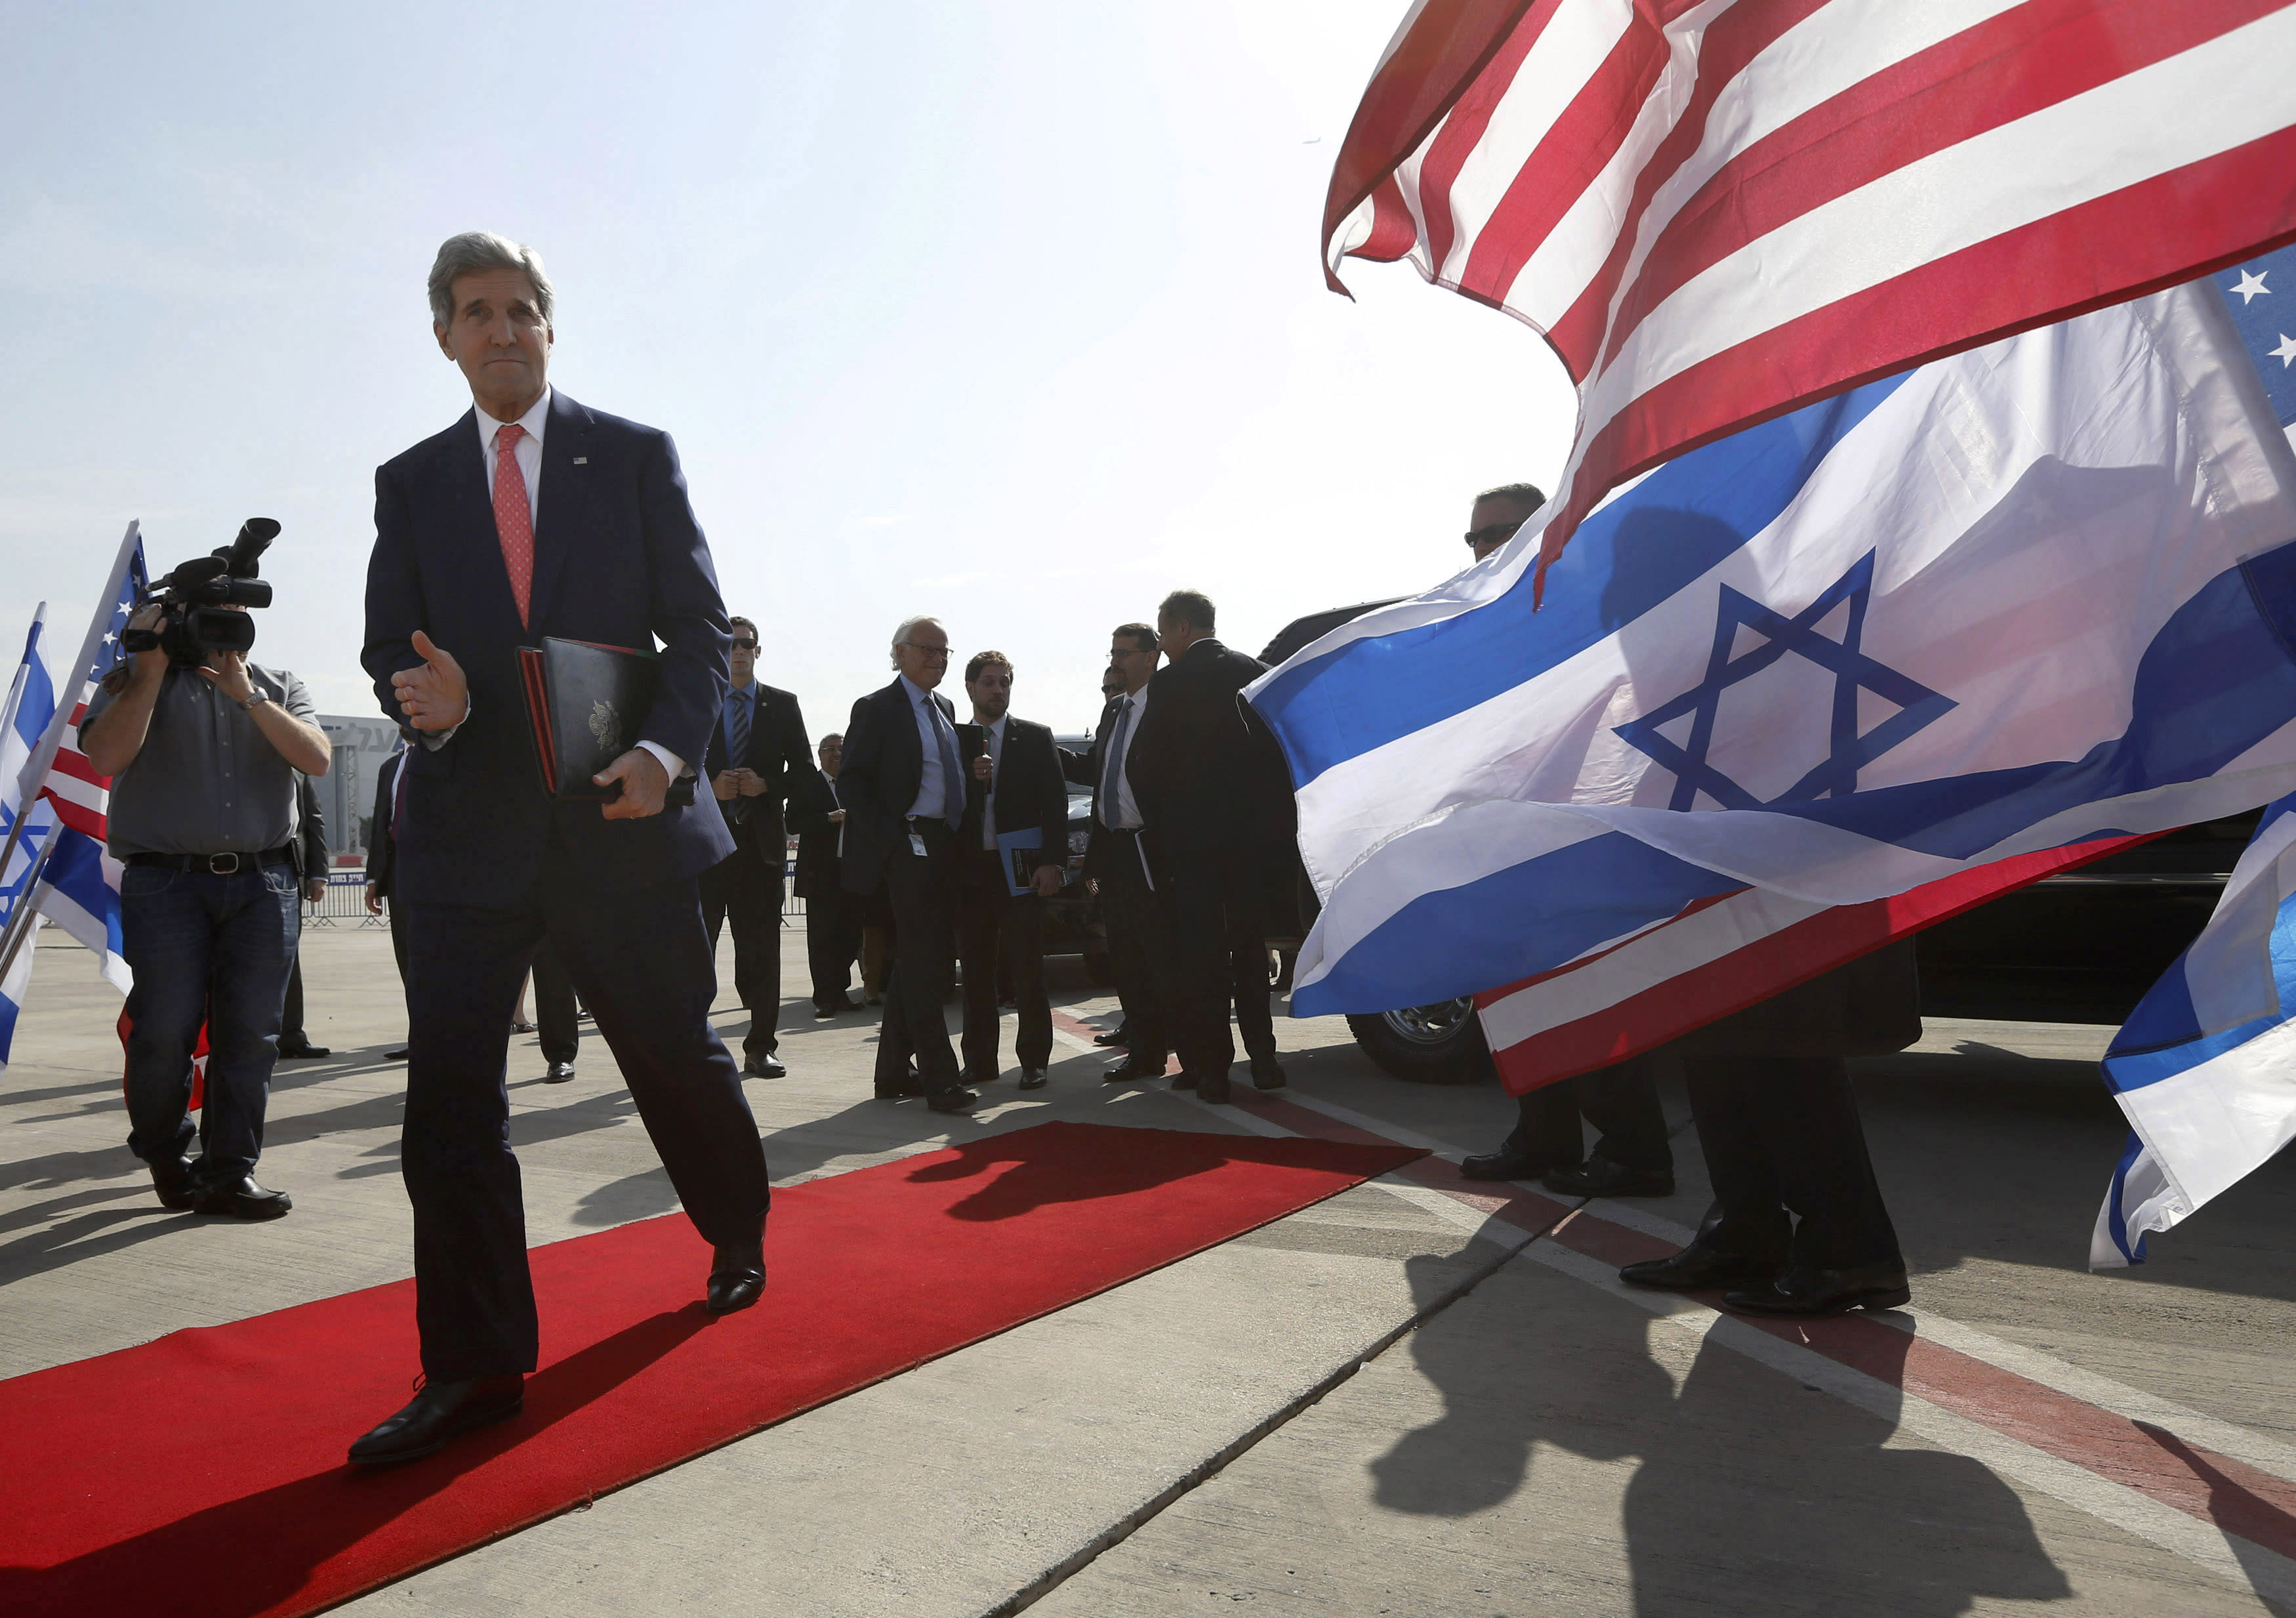 """FILE-In this Friday, Nov. 8, 2013 file photo, U.S. Secretary of State John Kerry walks to his plane after meeting with Israeli Prime Minister Benjamin Netanyahu in Tel Aviv, Israel. In an unexpected consequence of the global diplomacy over Iran, Israel and Gulf Arab states led by Saudi Arabia are boosting back-channel contacts and finding increasing common ground over their mutual dismay with Tehran's drive to mend ties with the West and reach a nuclear deal. The """"strange alliance"""" _ in the word of one former diplomat _ highlights how the ripples from Iran are driving some allies apart while pushing foes closer. It also highlights the Sunni world's distress at the possibility of a bomb in the hands of a Shiite power.(AP Photo/Jason Reed, Pool, File)"""